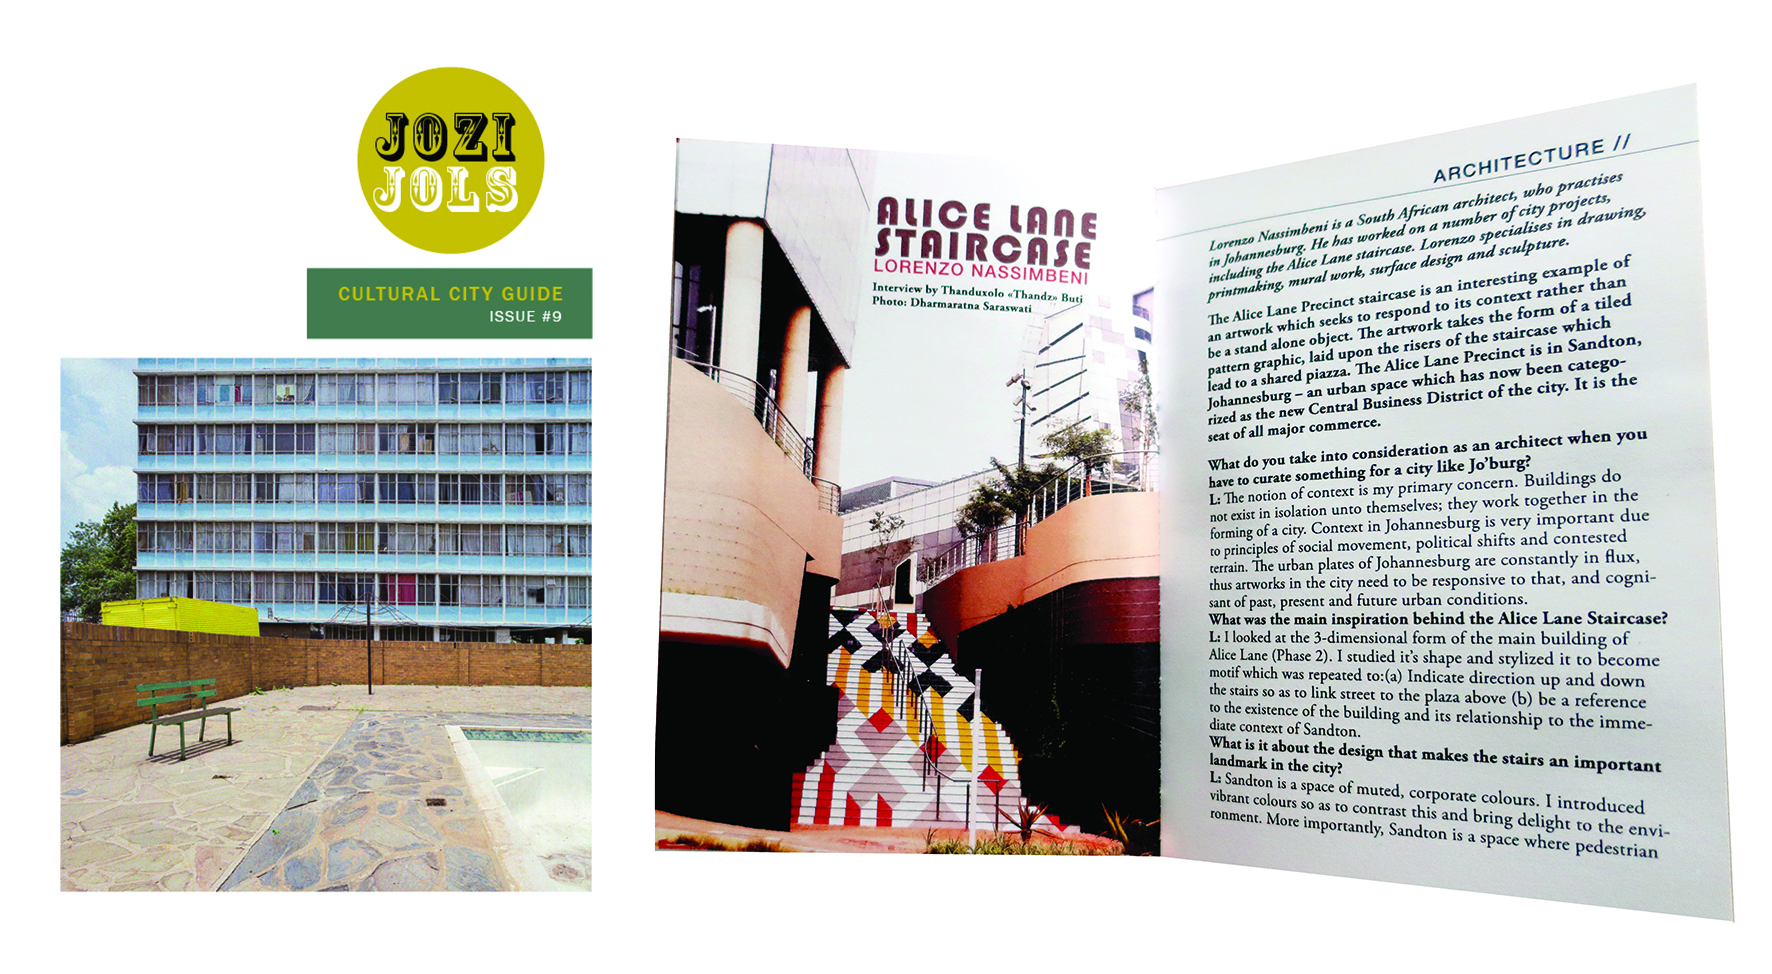 Jozi Jolz July 2018   Thank you to  JOZI JOLS  and in particular  Carole Desbois  (publisher art director) and  Thanduxolo Thandz Buti  (editor and managing director) for including this article on 'Colourway', and artwork developed for a staircase at  #AliceLane . The building was designed by  Paragon Group . Many thanks to  Parts & Labour  (project management) and  Counterspace  (graphic presentation) for the collaboration. Photograph of staircase by Dharmaratna Saraswati. JoziJols front cover photograph by  Mpho Mokgadi